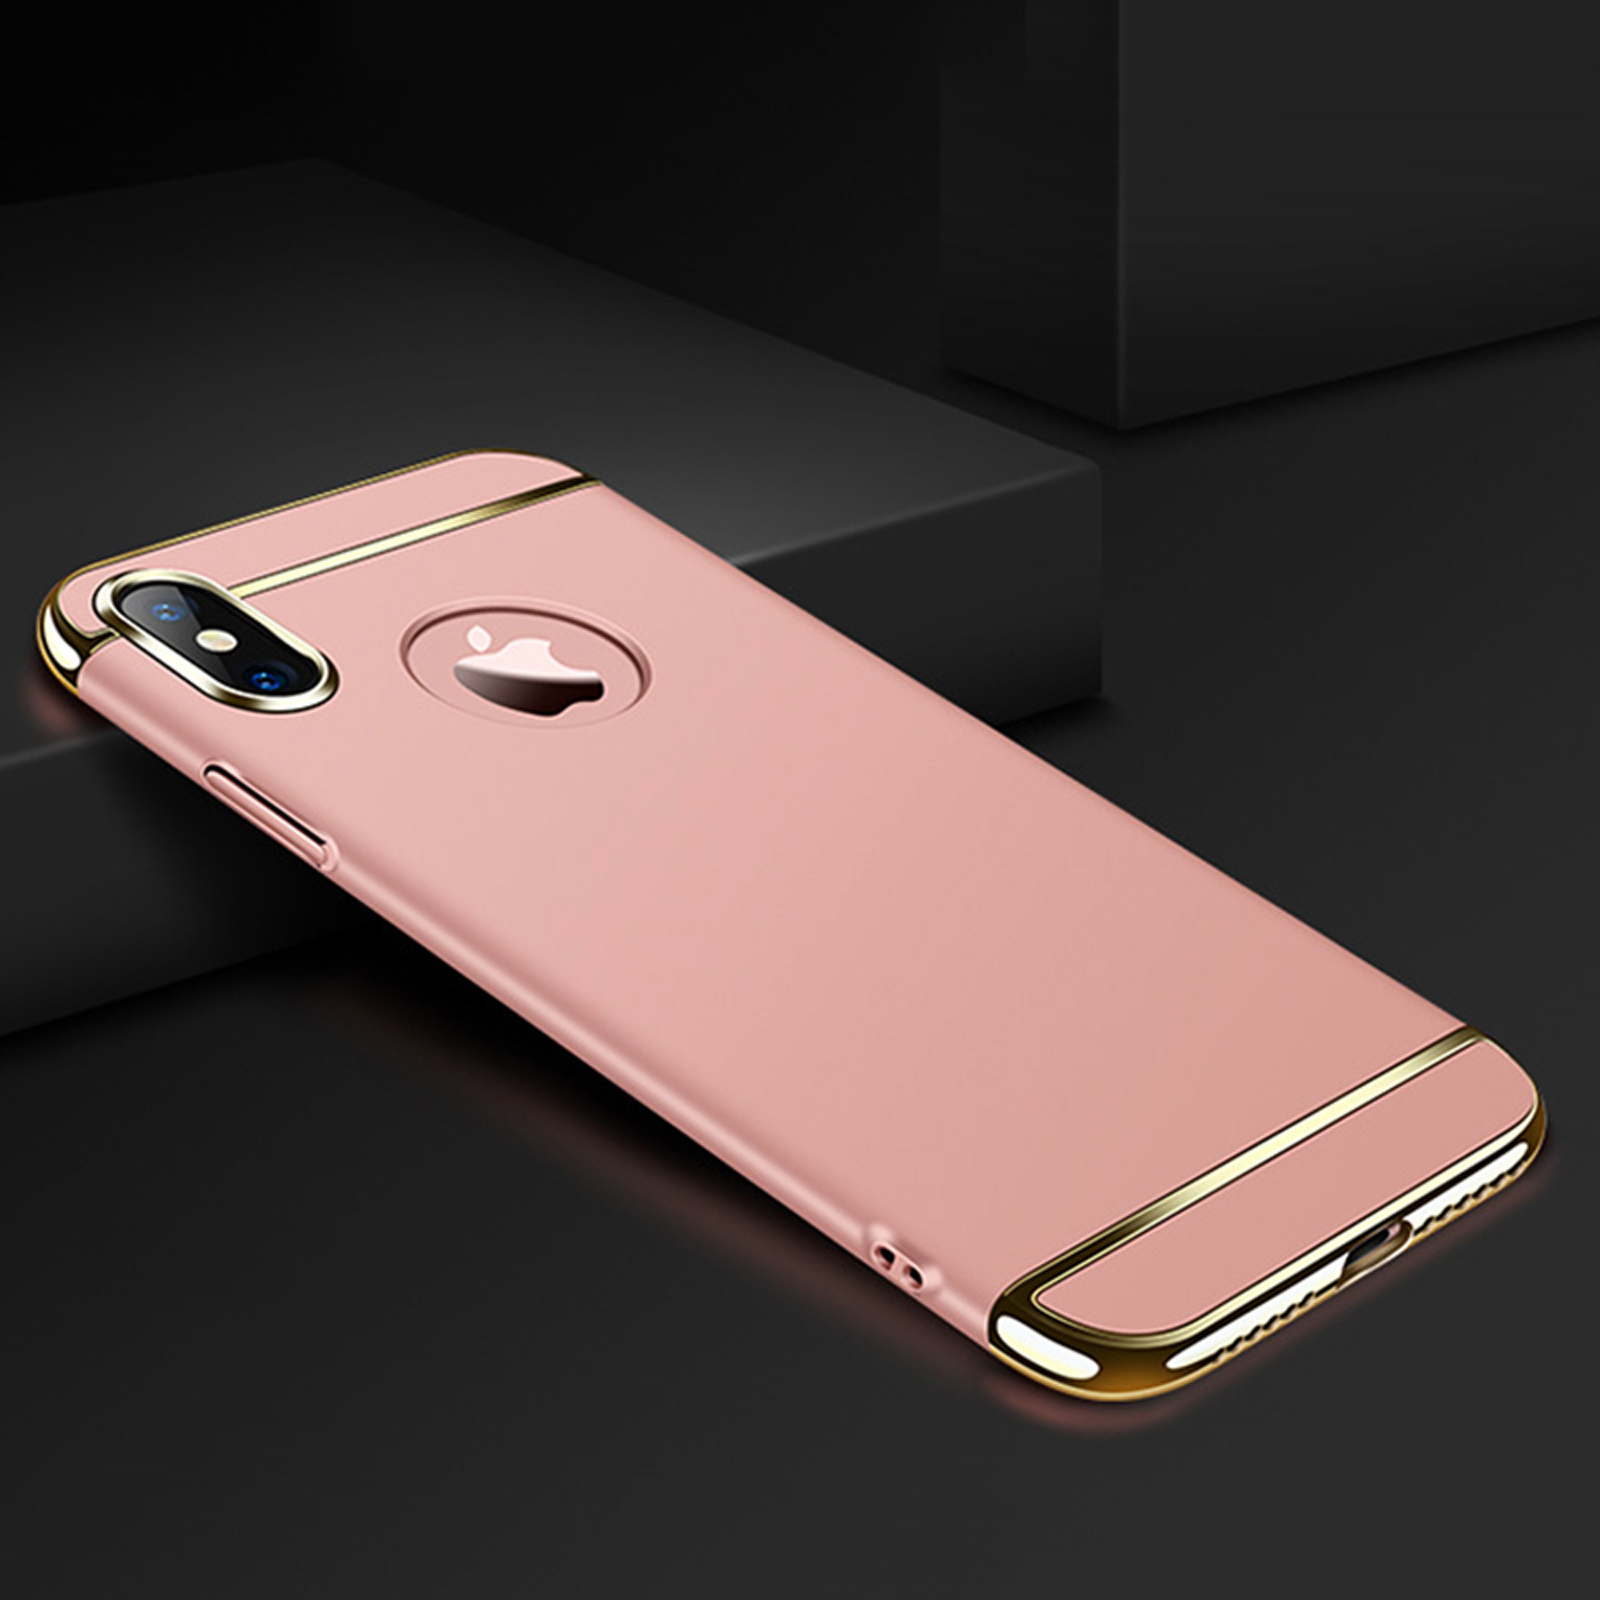 thumbnail 59 - Luxury Matte Case Tempered Glass Cover For Apple iPhone X XS XR Max 10 8 7 6s 6